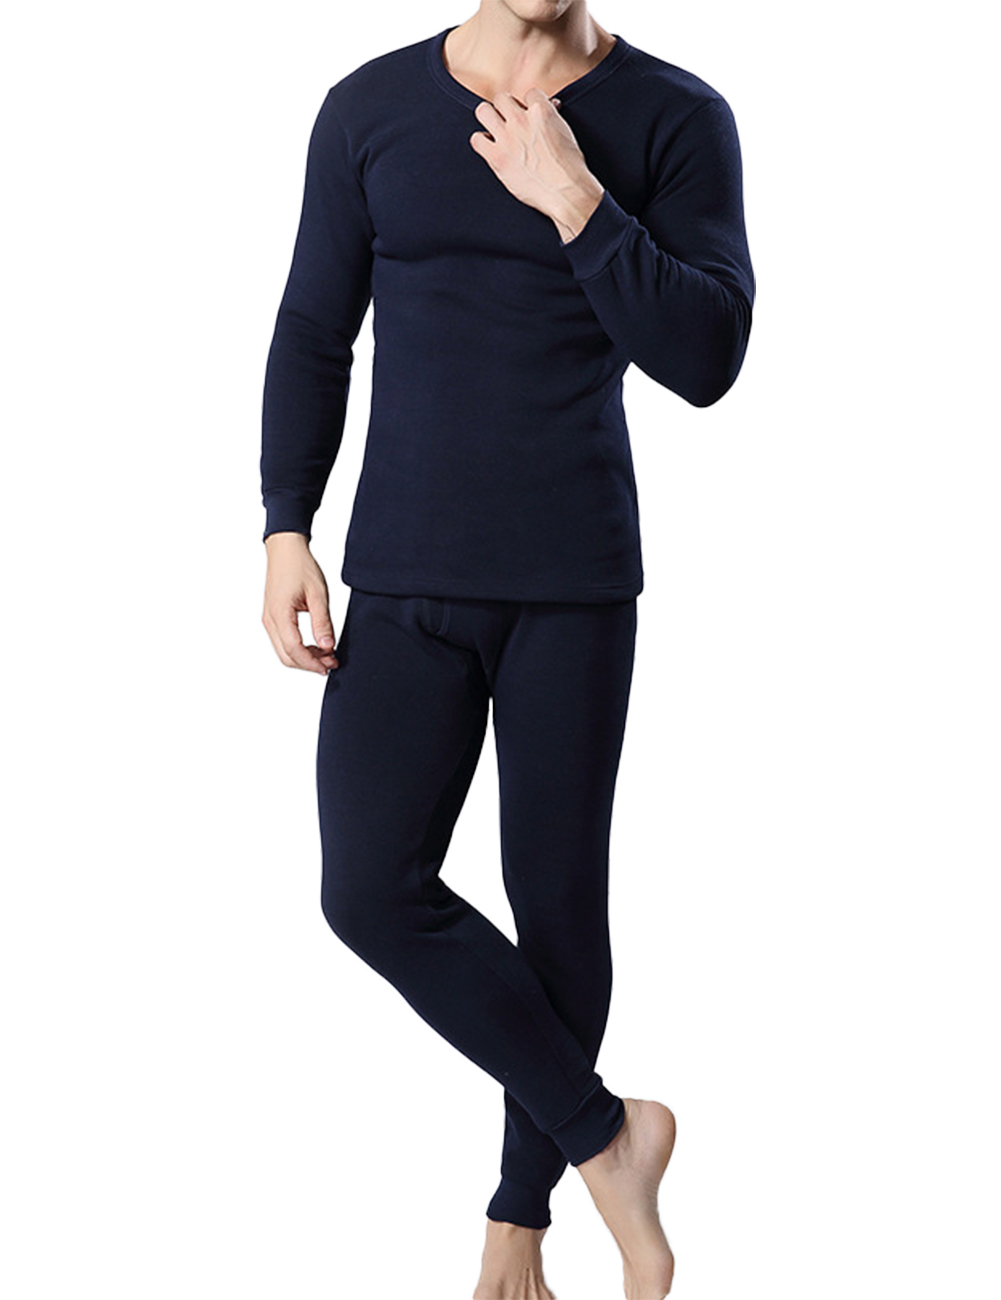 Men's Autumn and Winter Round Neck Long Sleeve Solid Color Vans Thermal Underwear Set